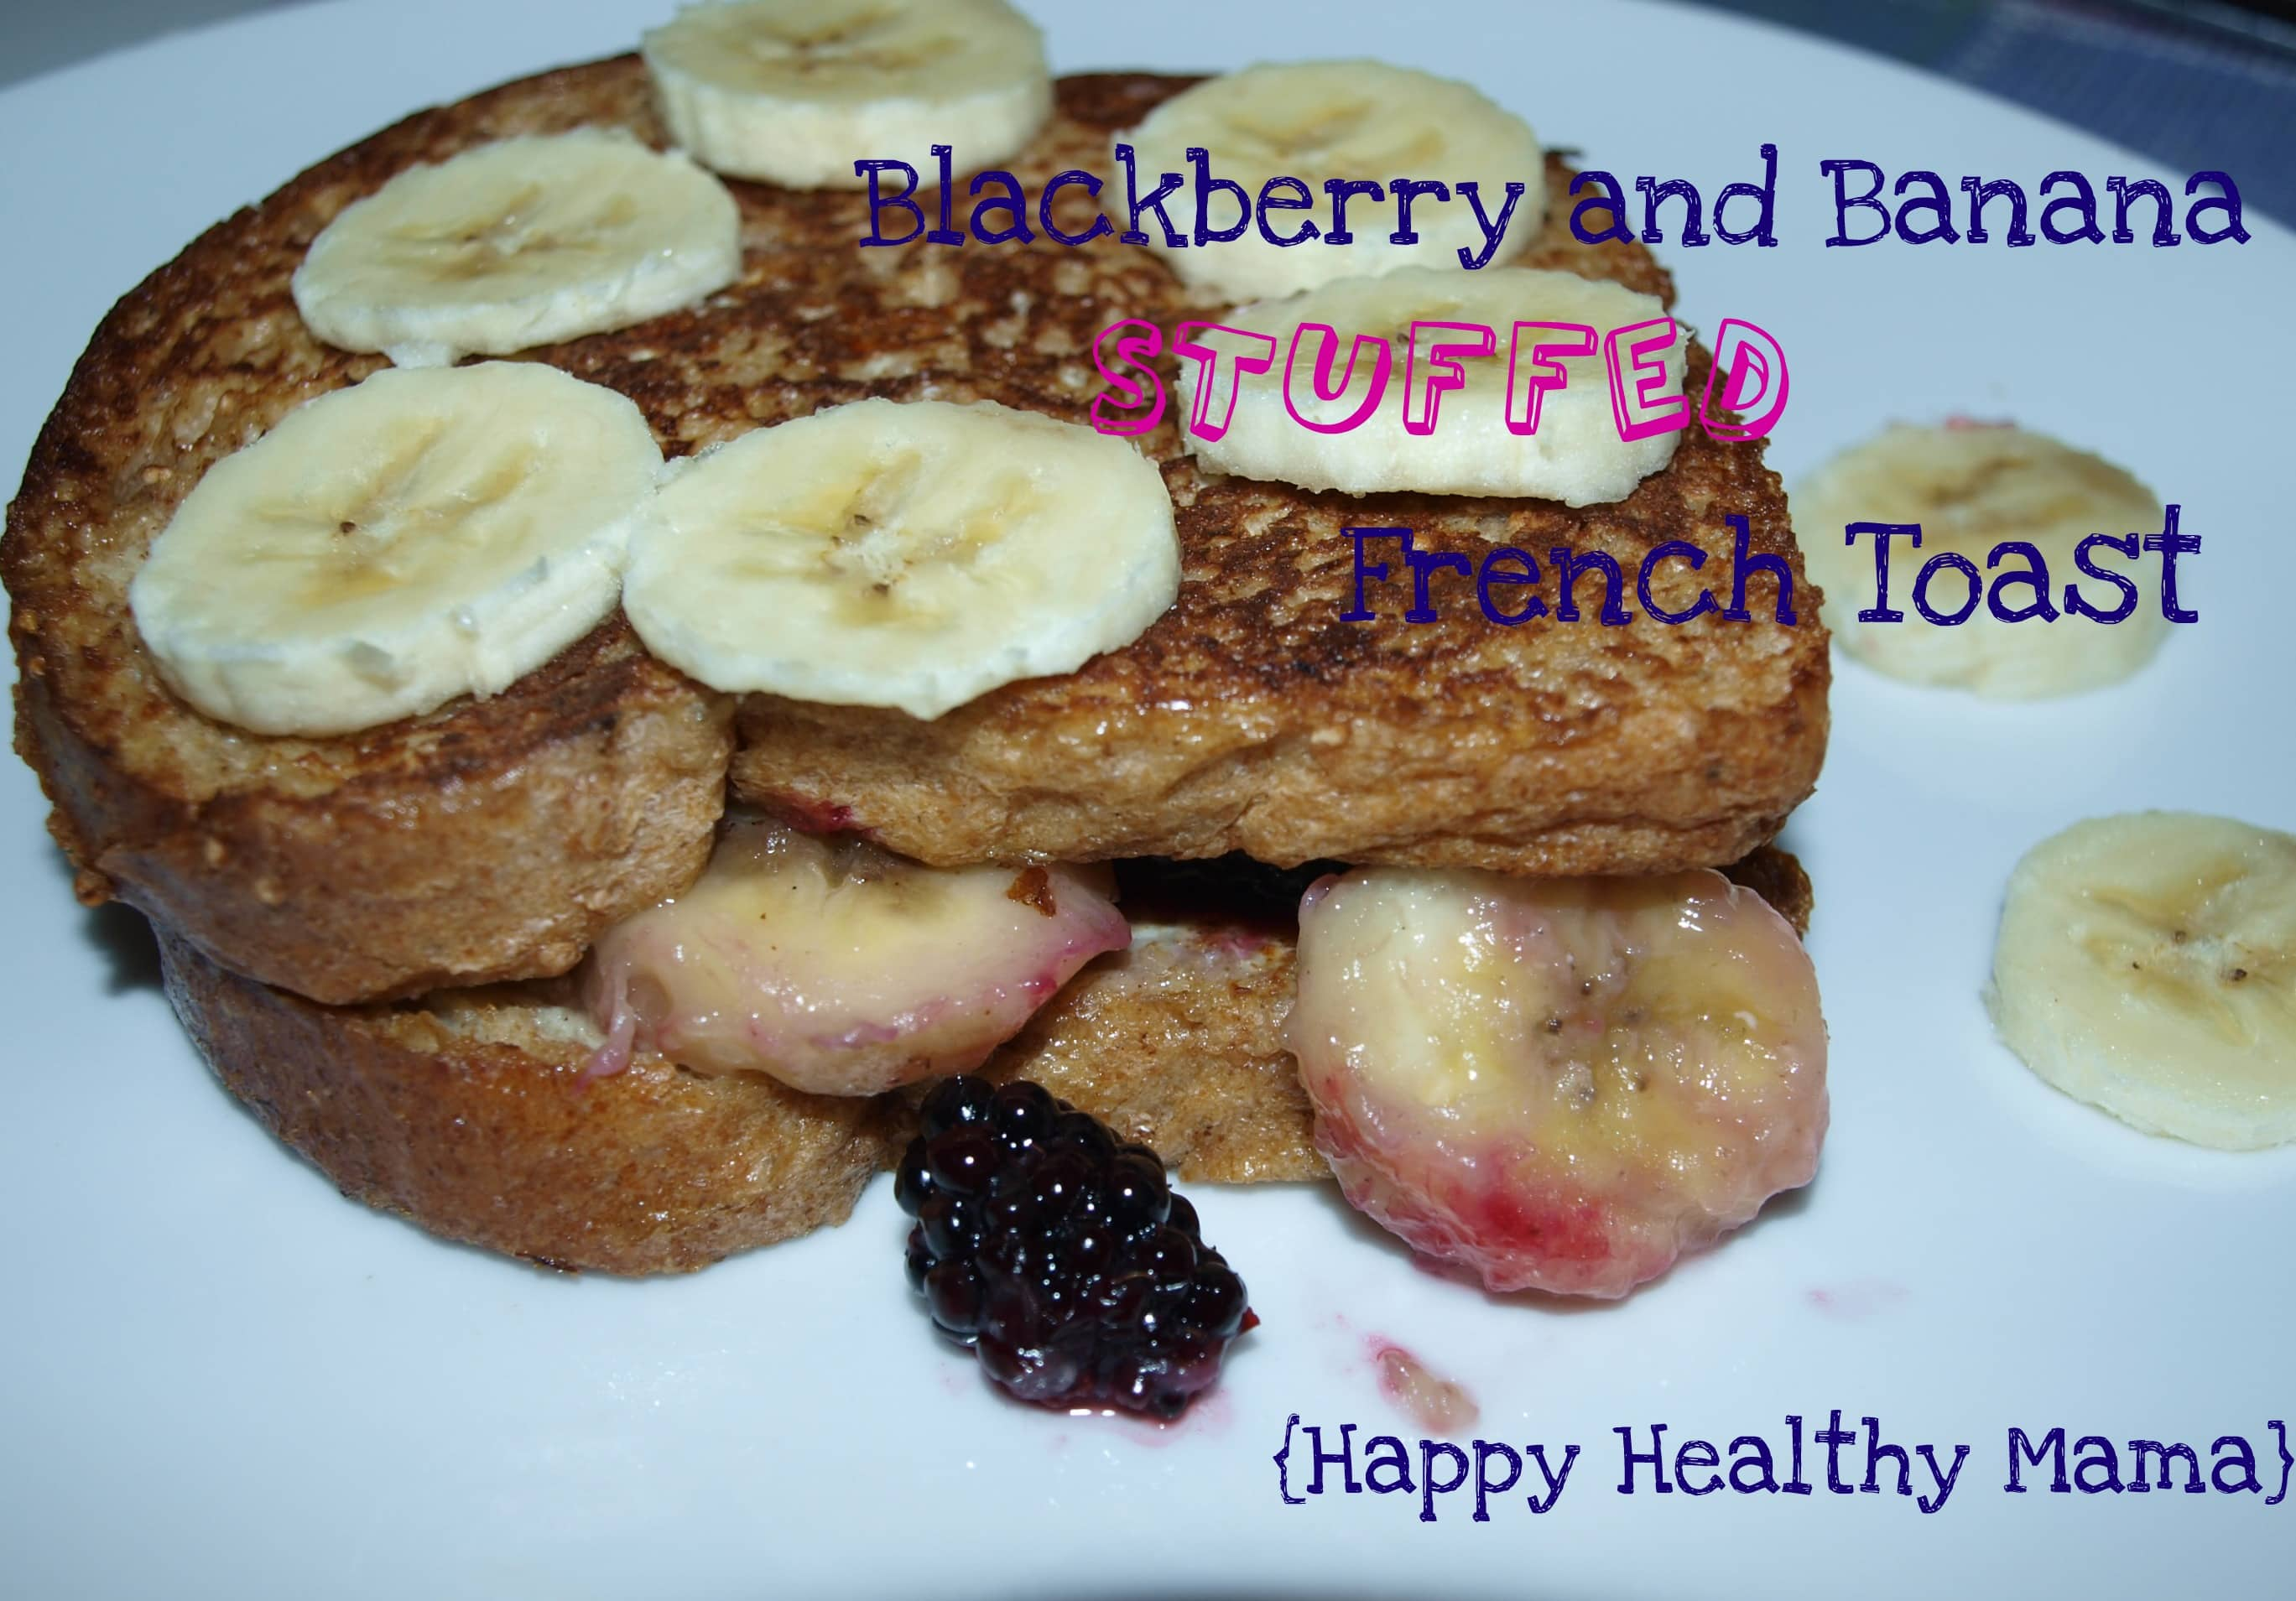 Blackberry and Banana Stuffed French Toast